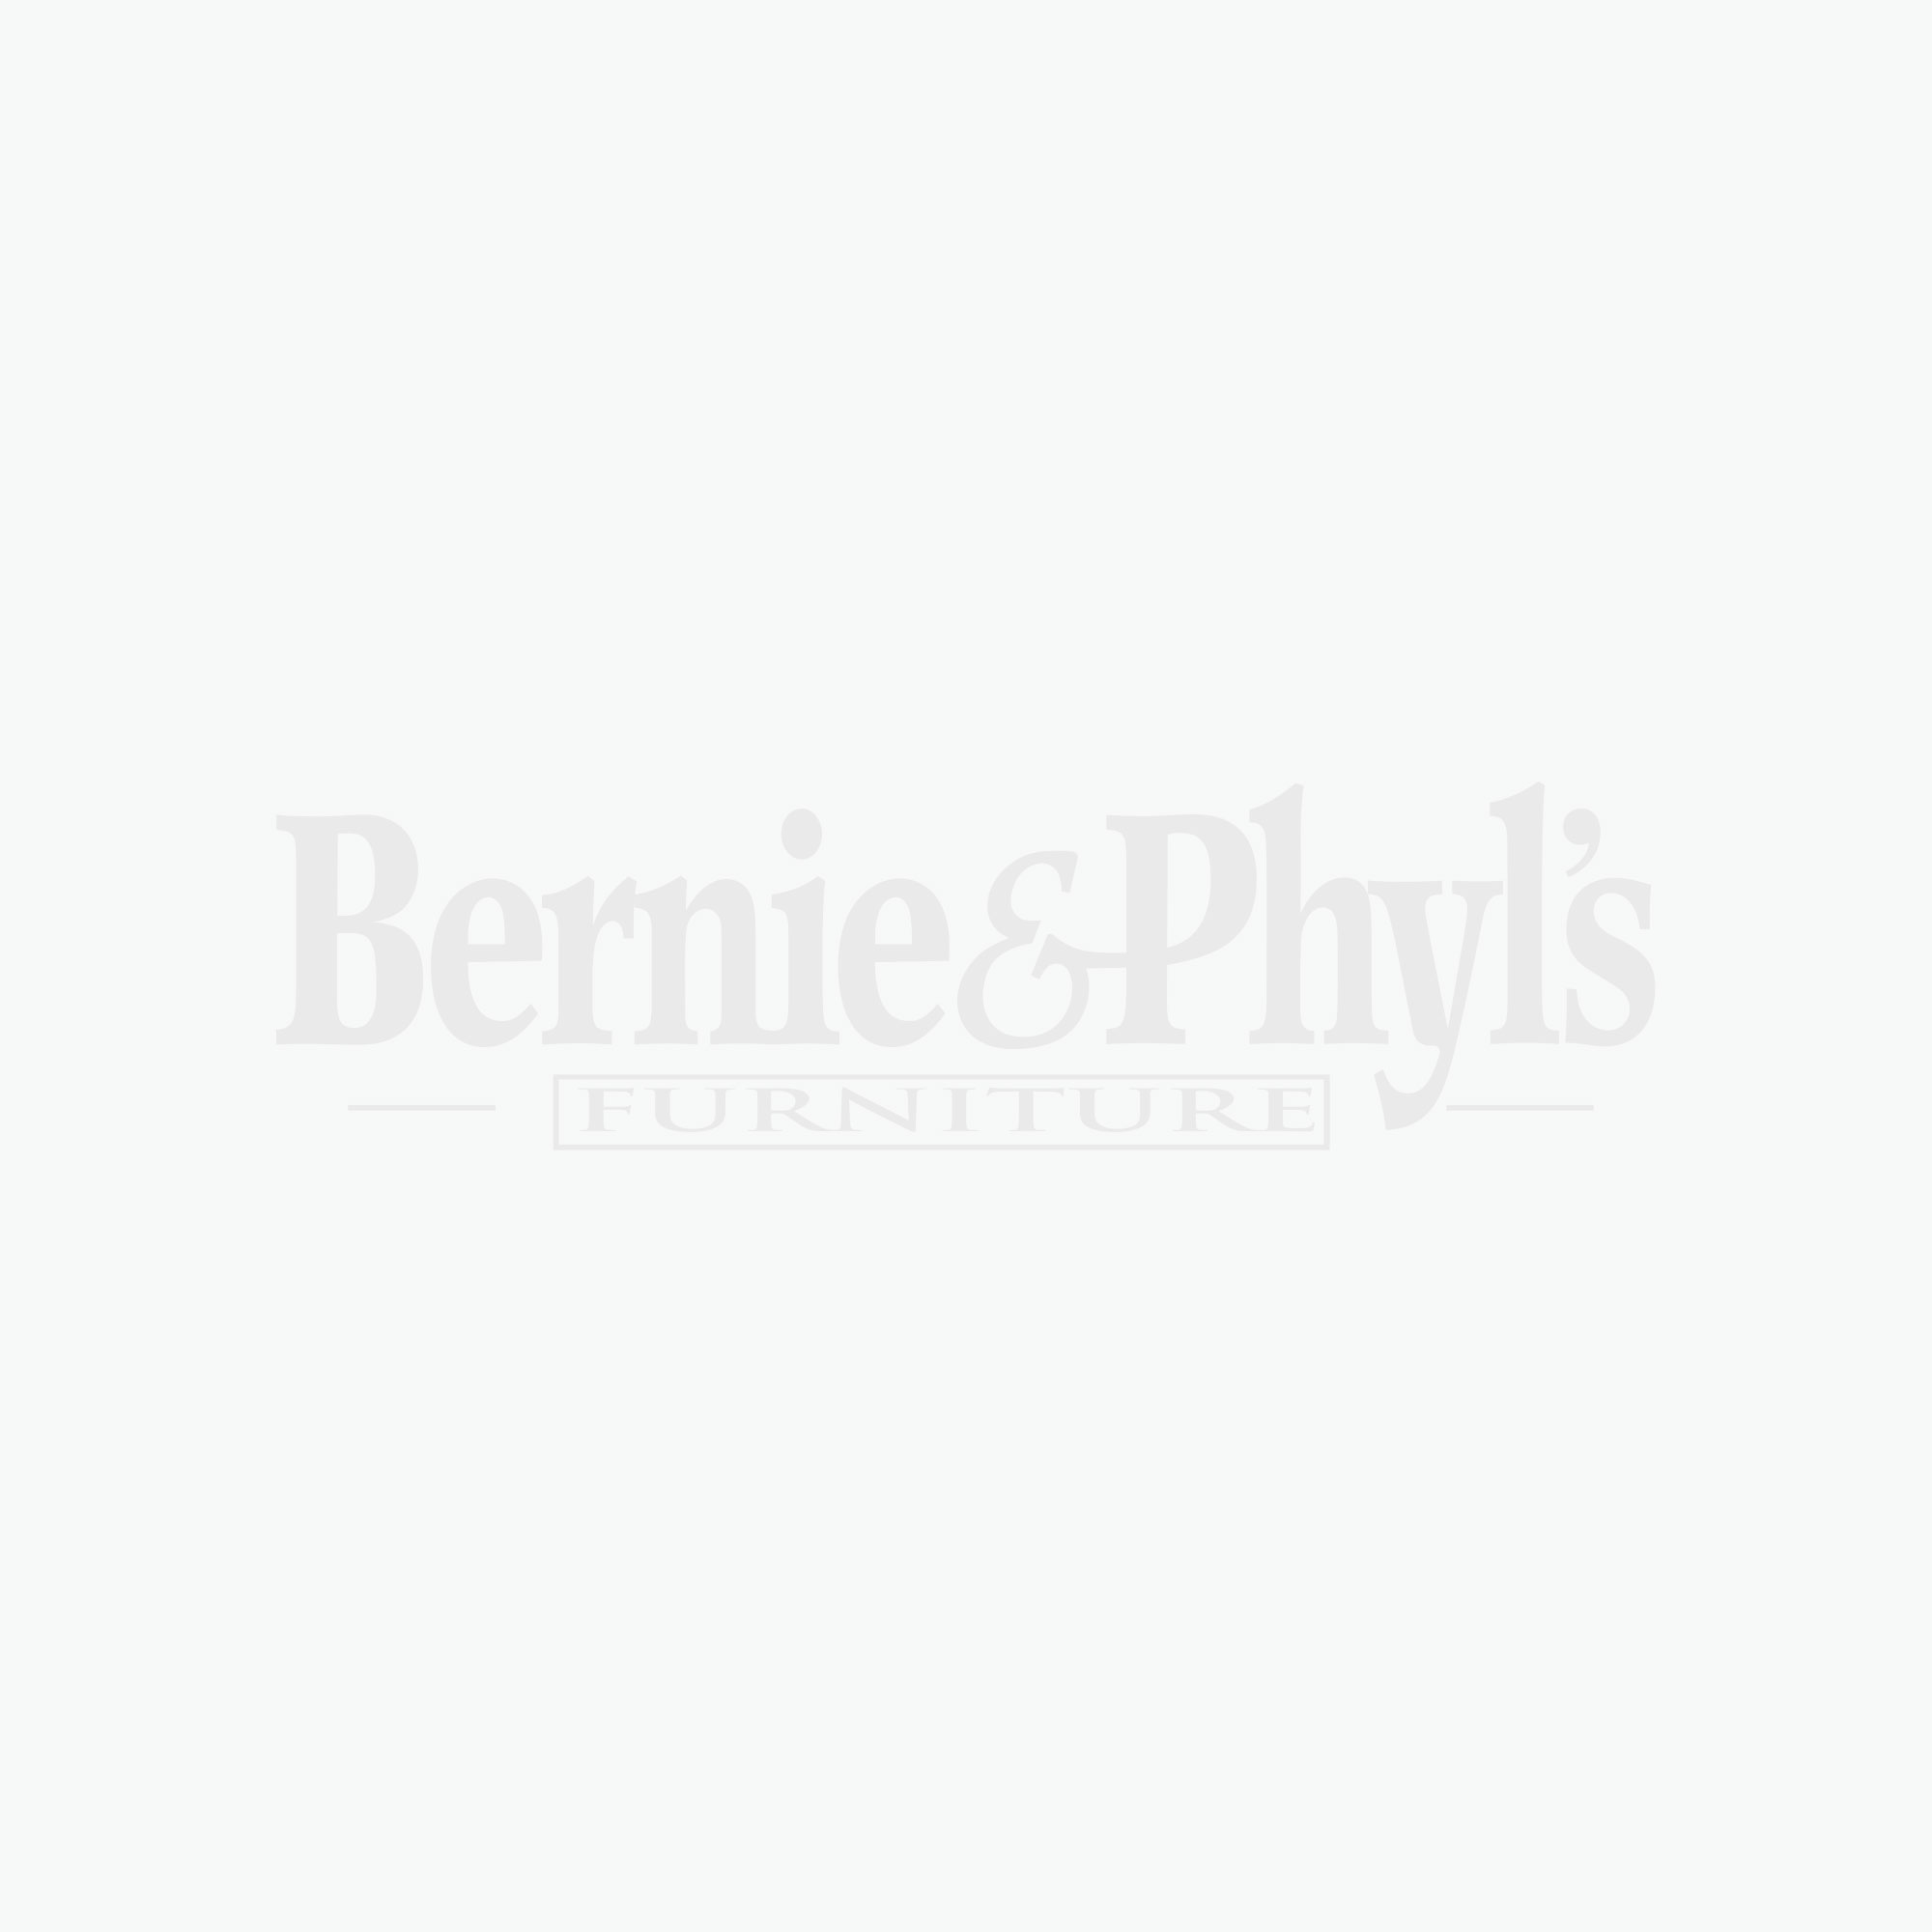 Picture of: Cambridge Staircase Bunk Bed With Drawers Bernie Phyl S Furniture By Innovations